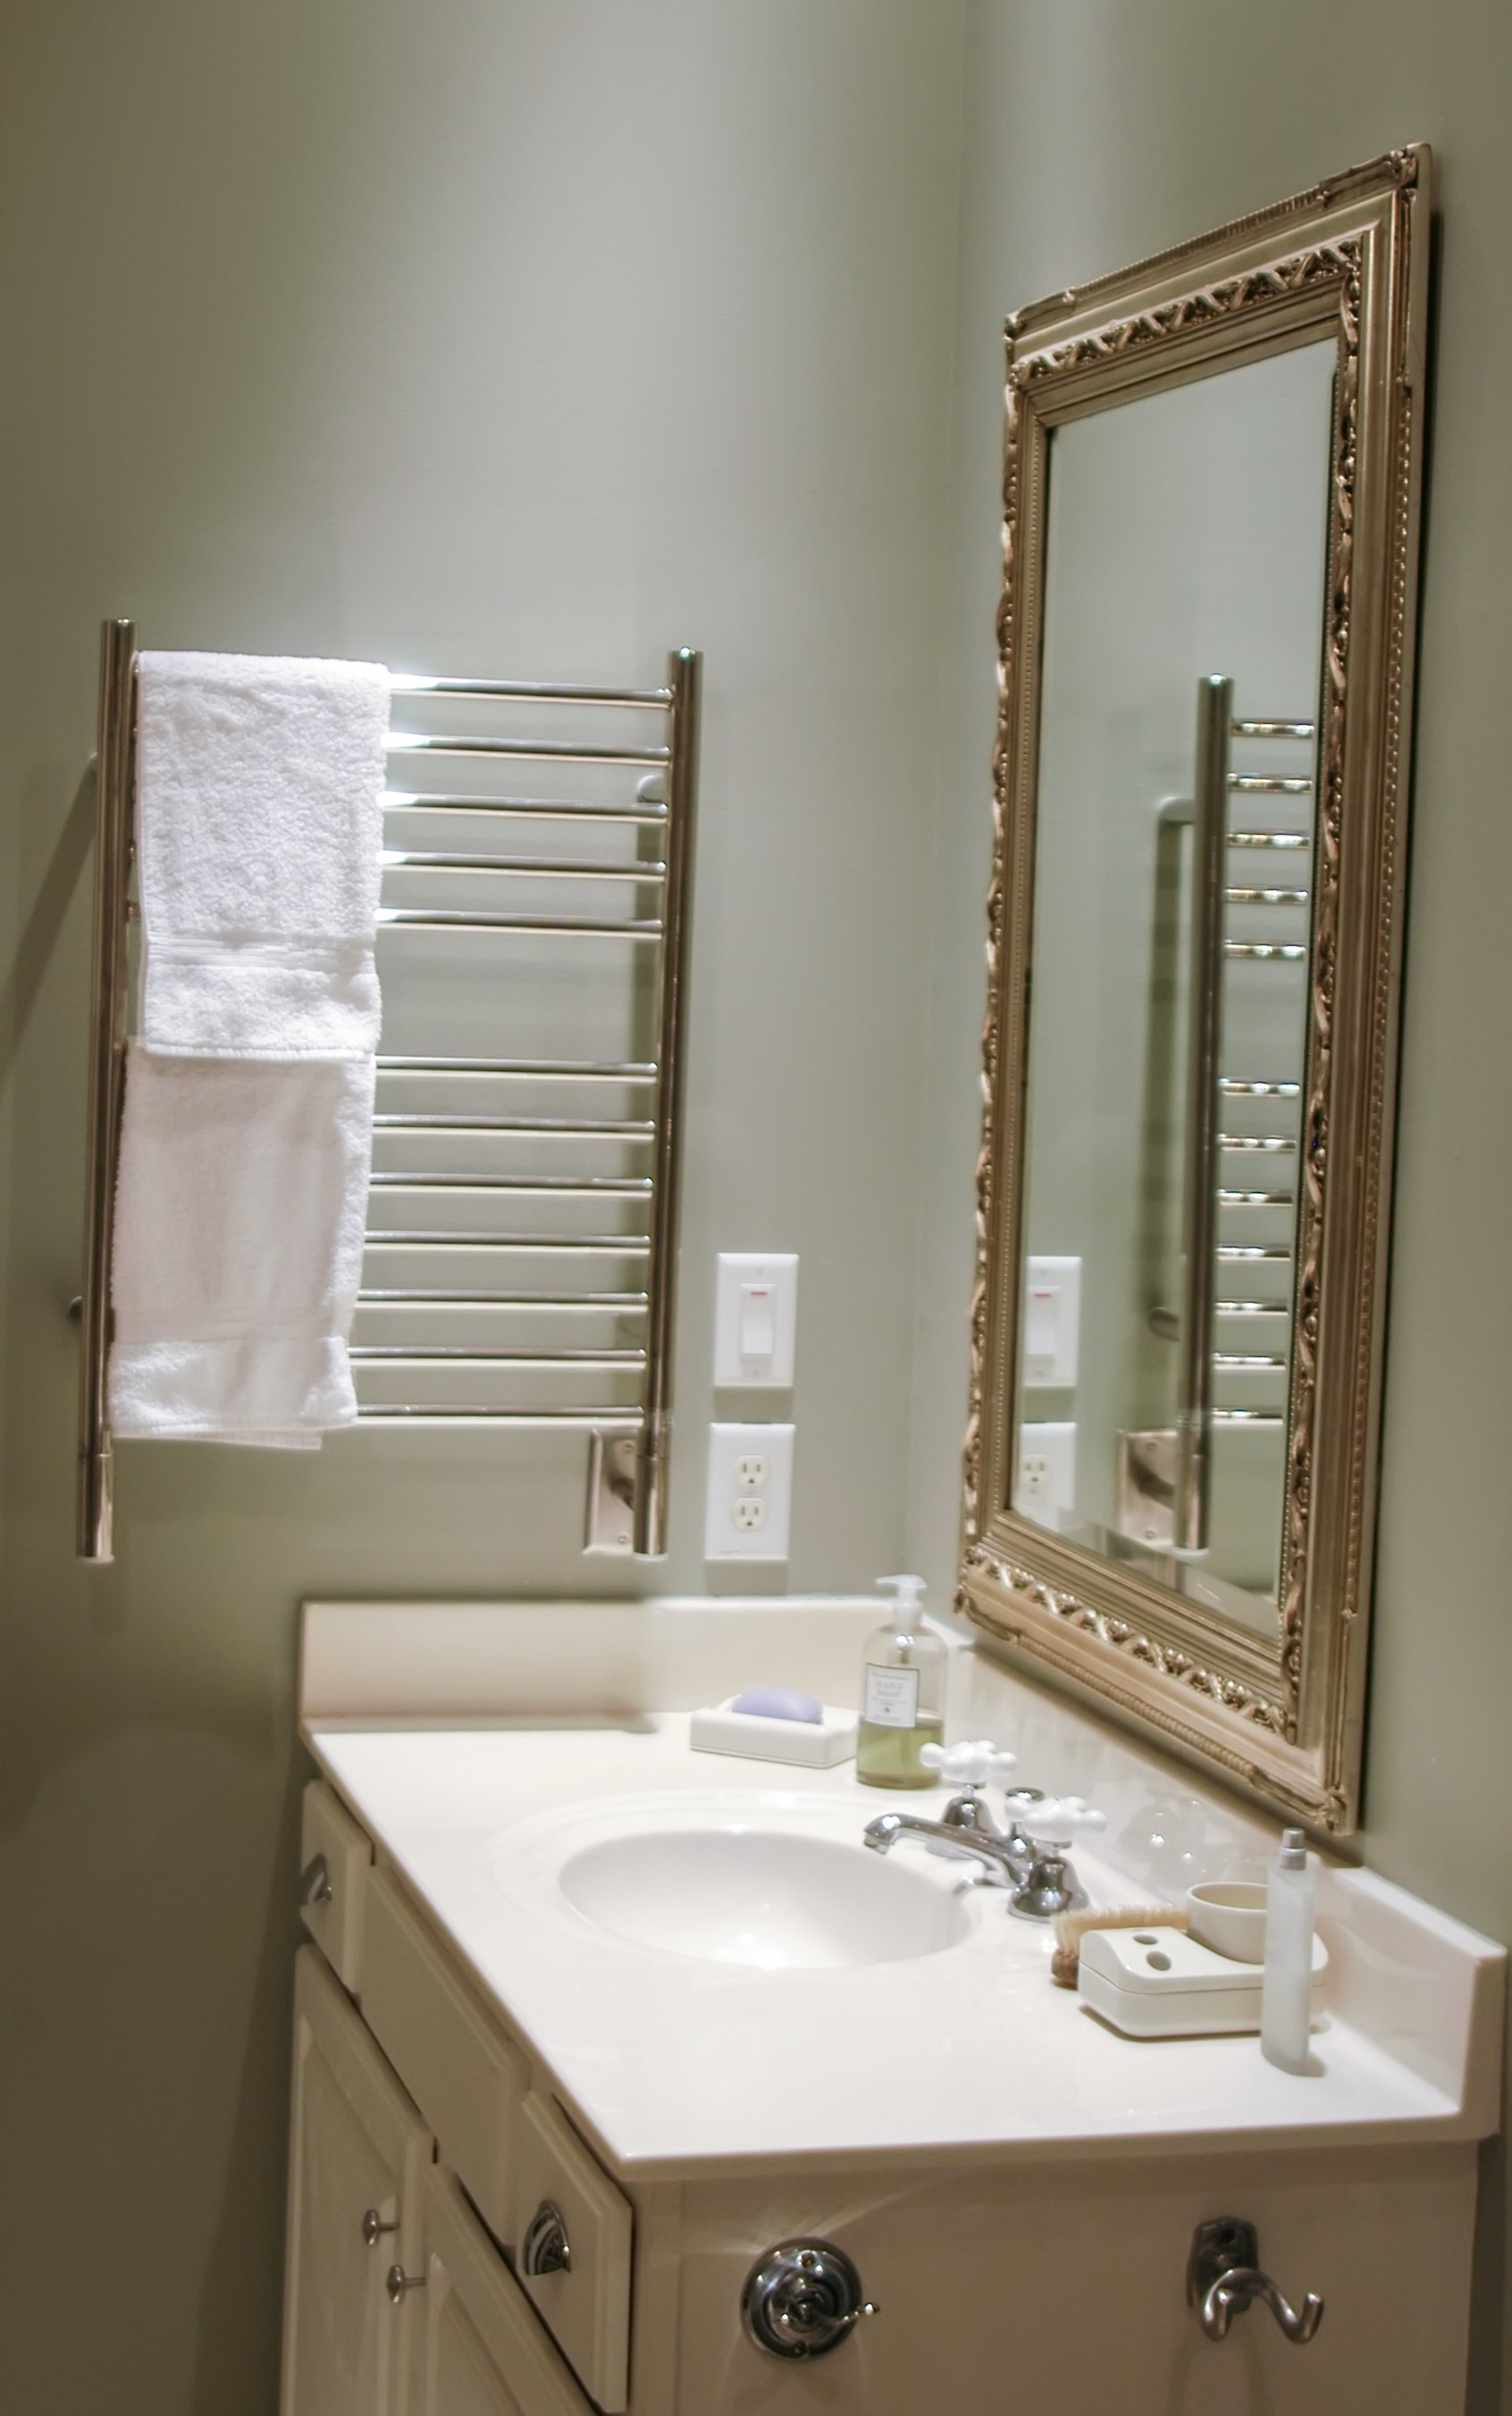 Heated towel racks can be set on a timer to minimize energy use, although Amba Products Director Fred Salati noted they cost pennies per day to leave on.